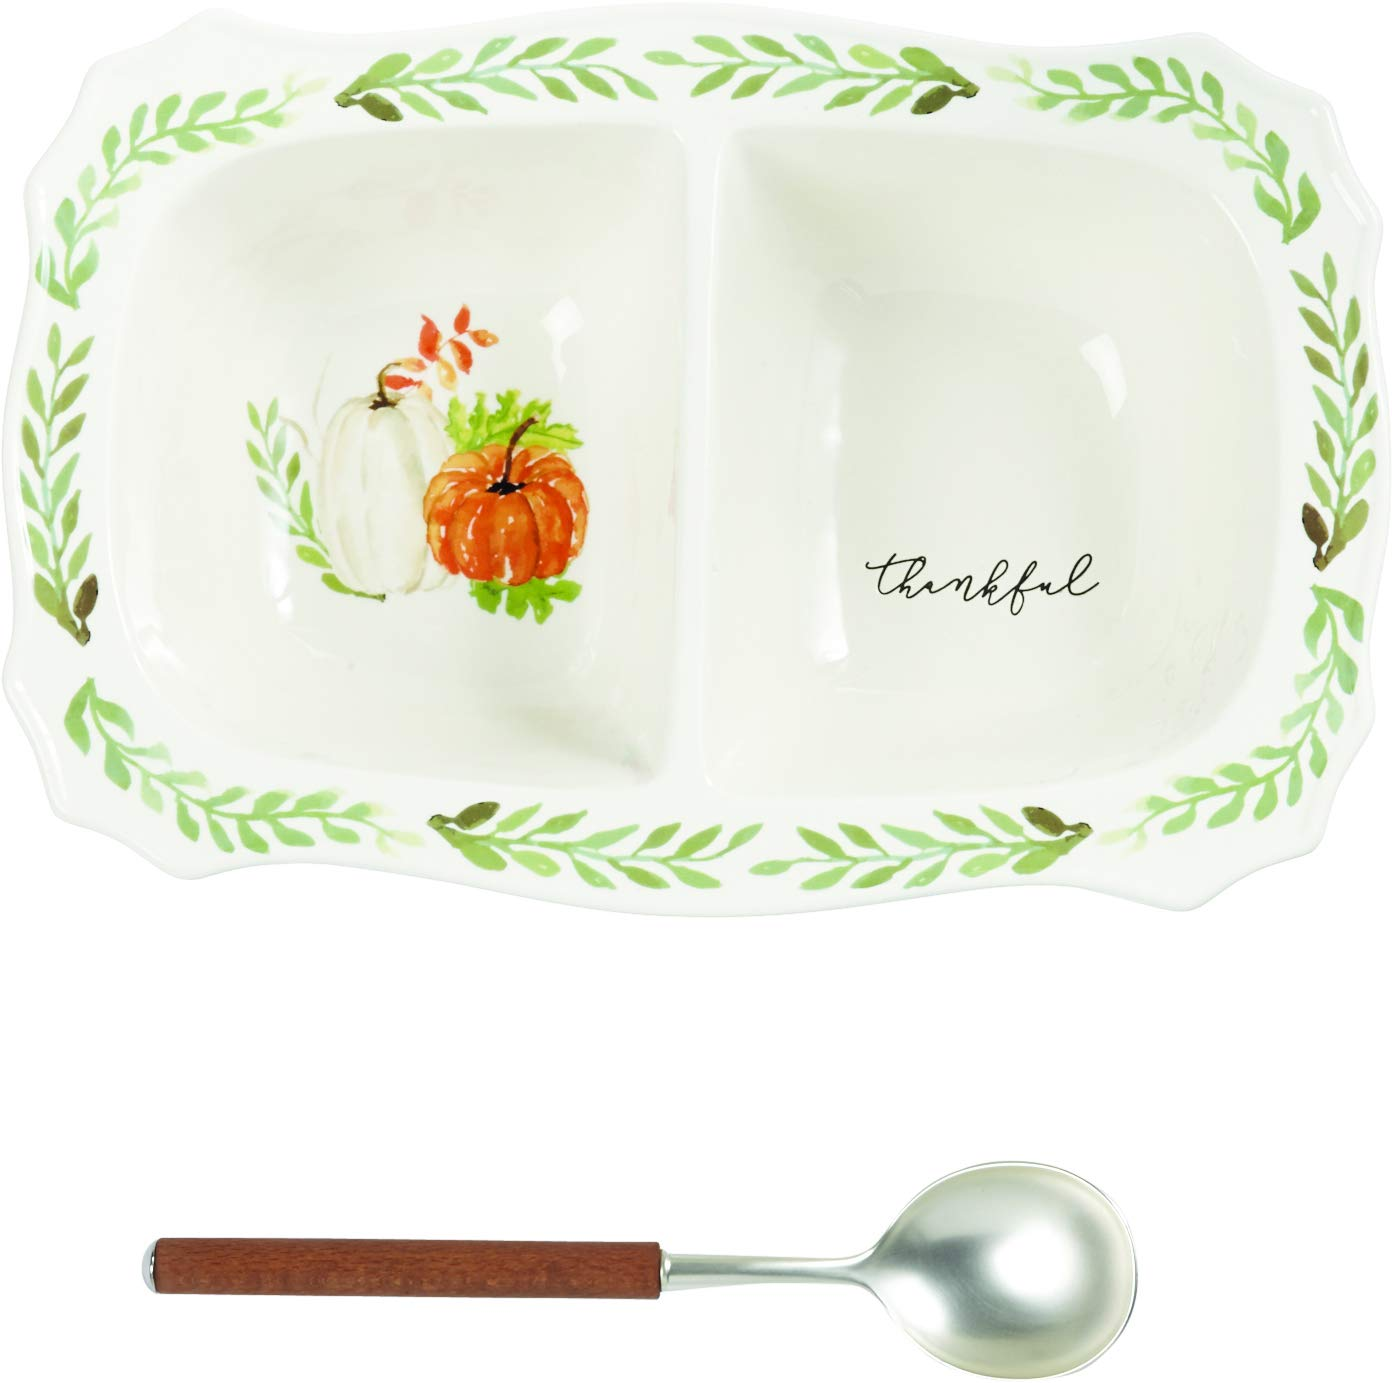 Gather Large Side Dish Server Set Mud Pie 40700028